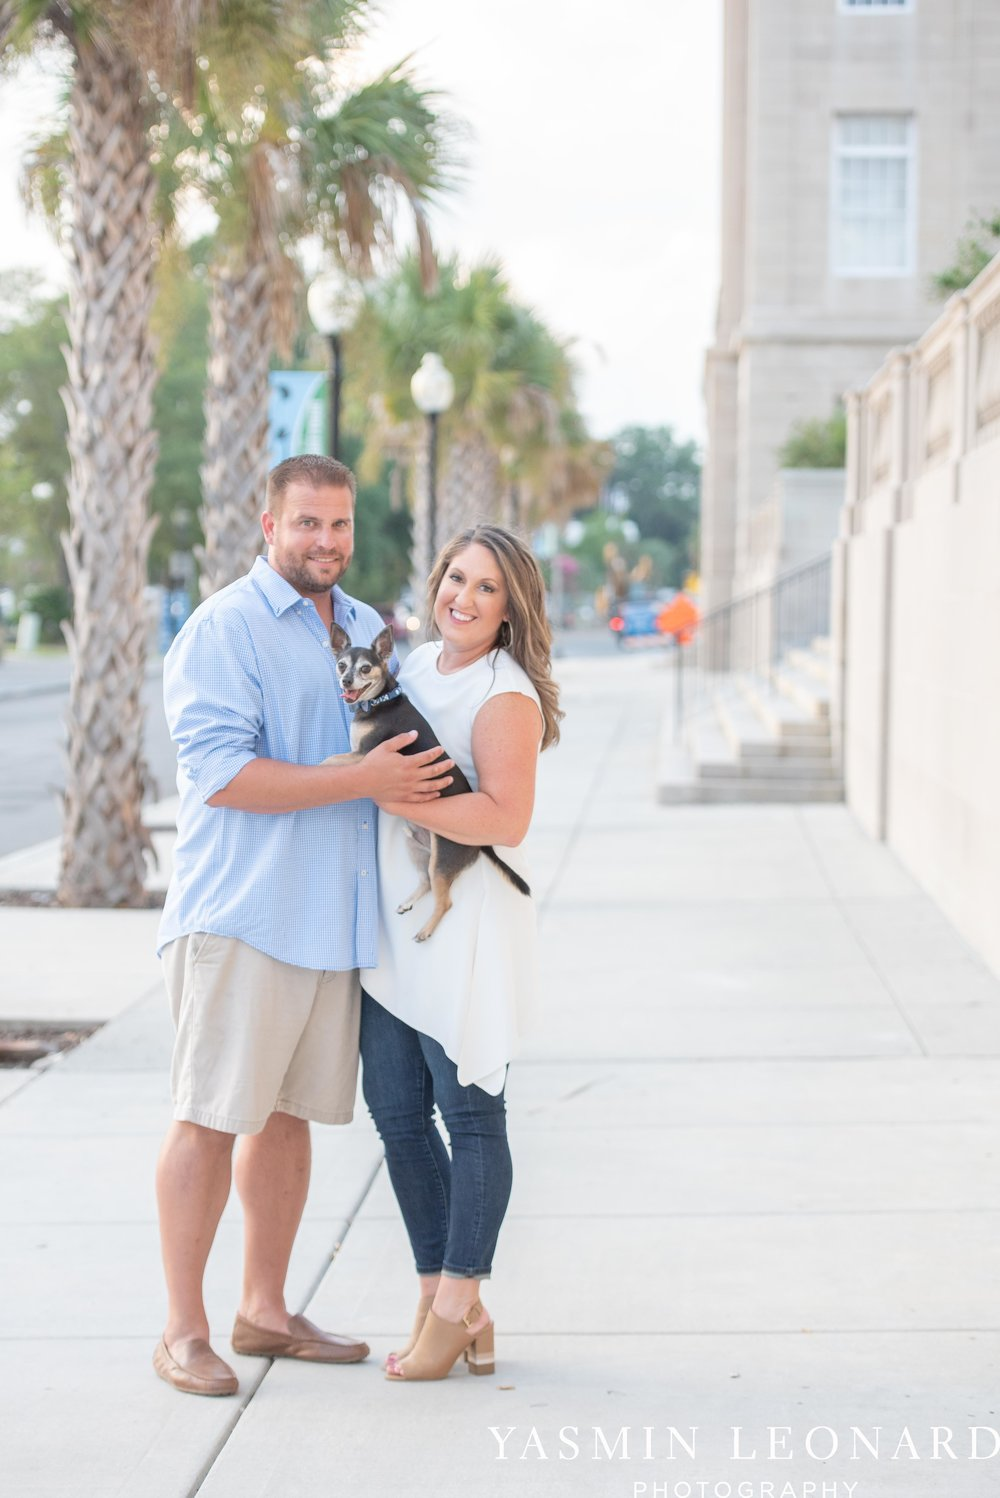 Wrightsville Beach Engagement Session - Wilmington Engagement Session - Downtown Wilmington Engagement Session - NC Weddings - Wilmington NC - Yasmin Leonard Photography-9.jpg